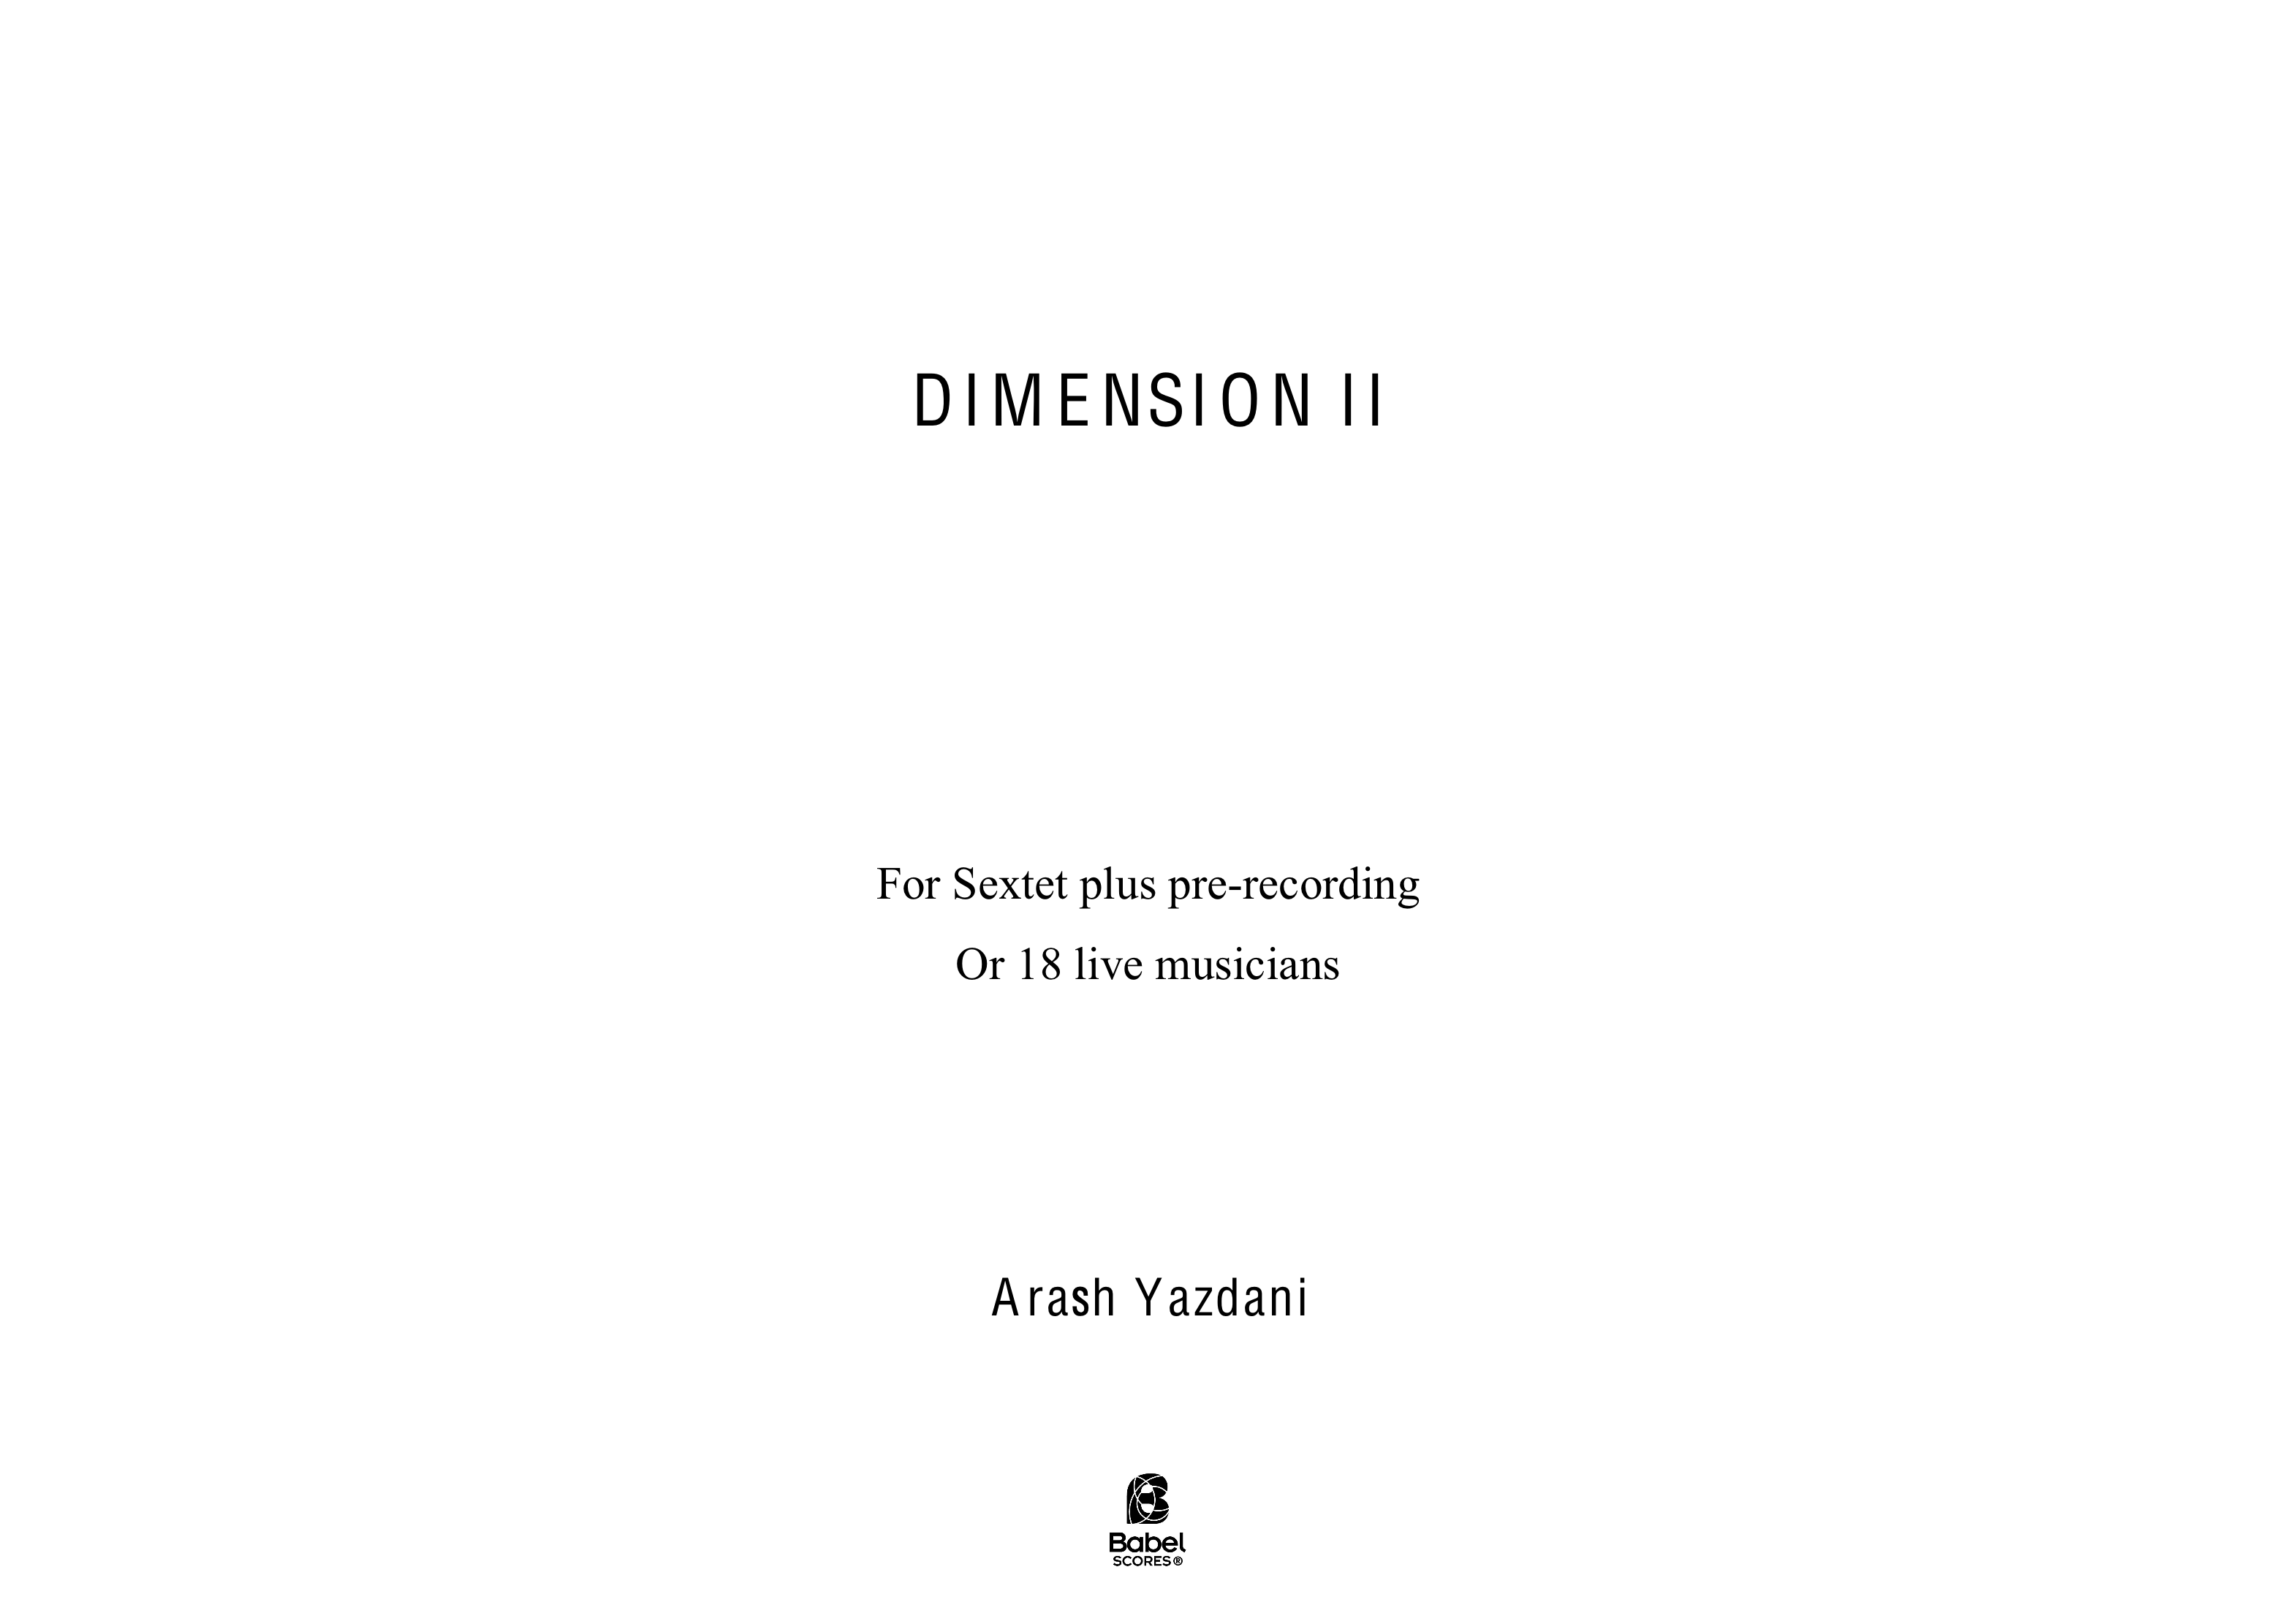 DIMENSION II A3 z